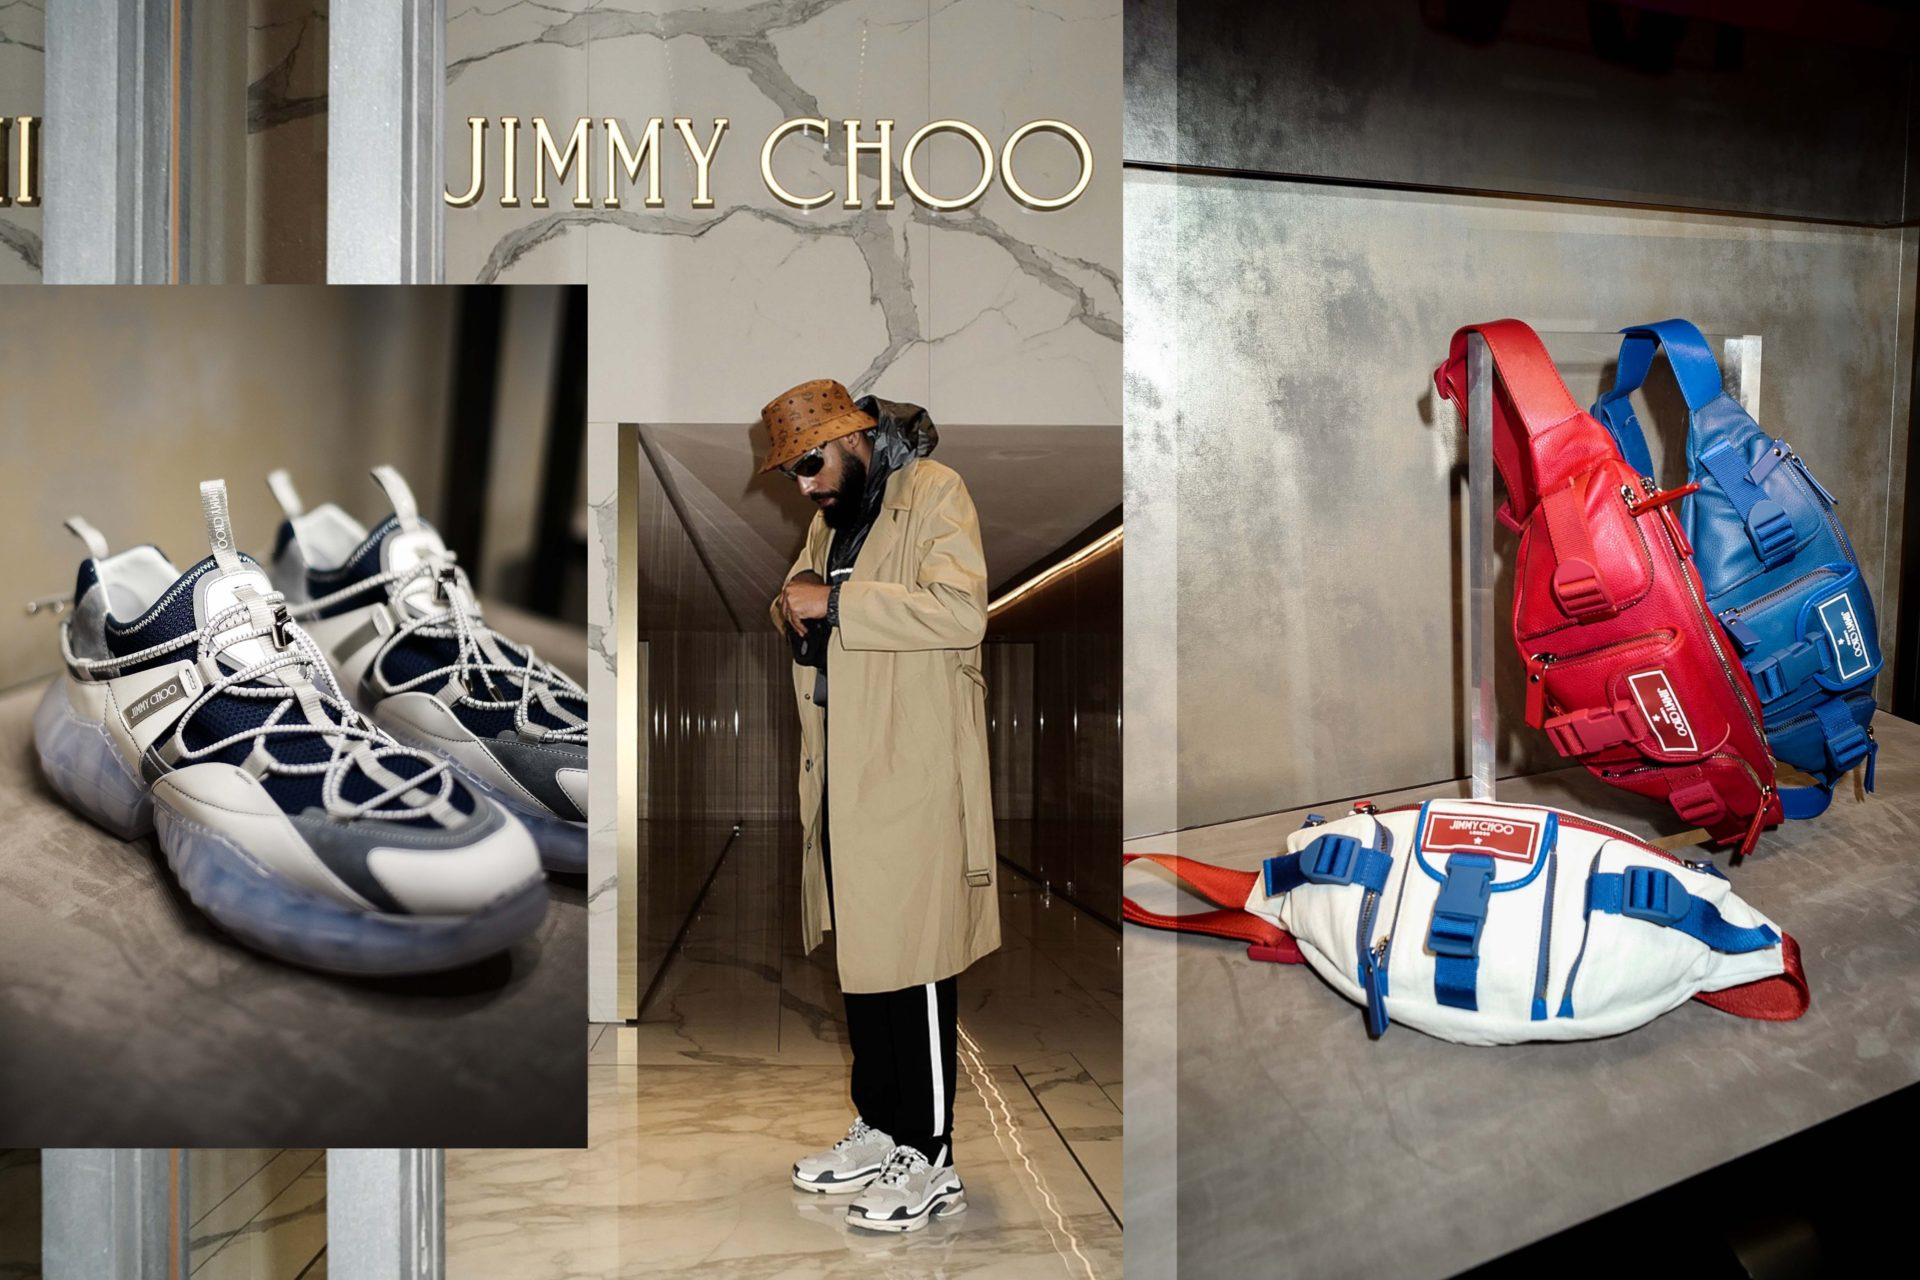 Jimmy Choo Fall/Winter 19 Presentation